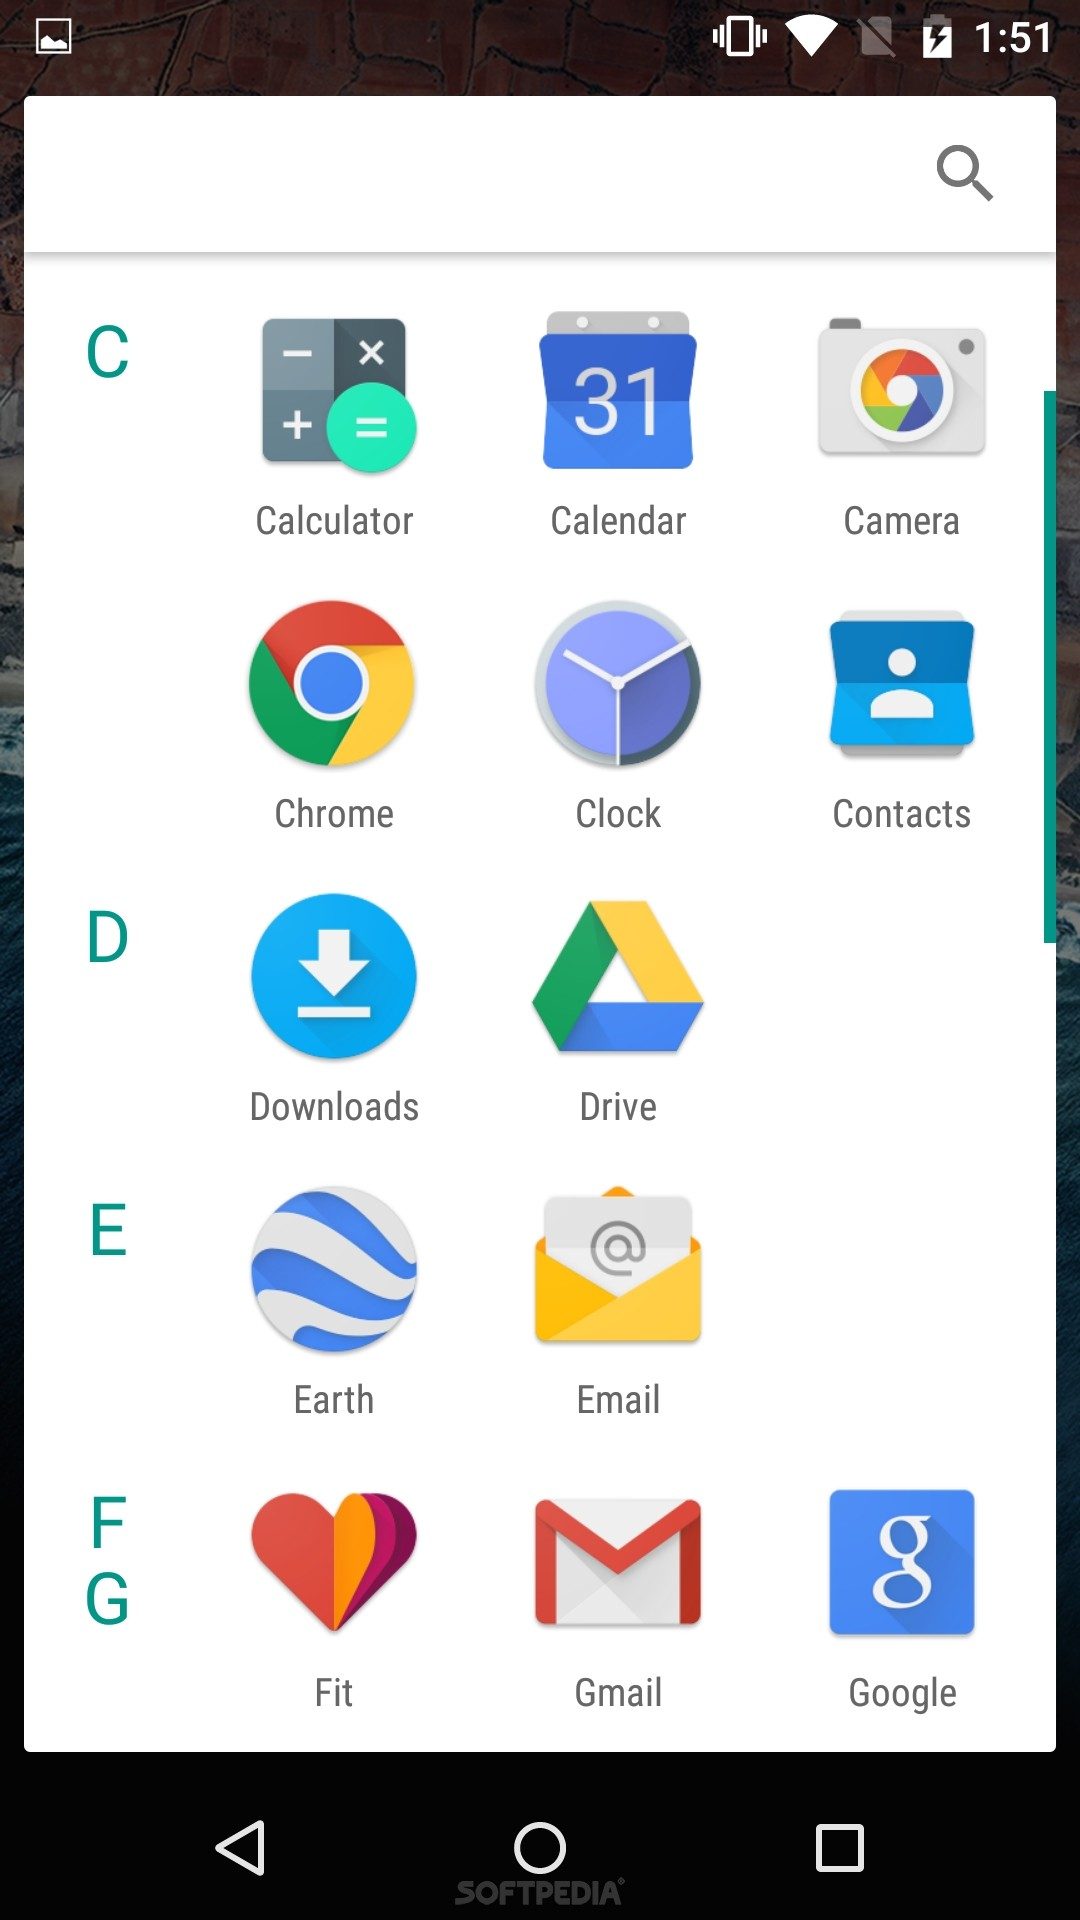 how to download images from google in android mobile